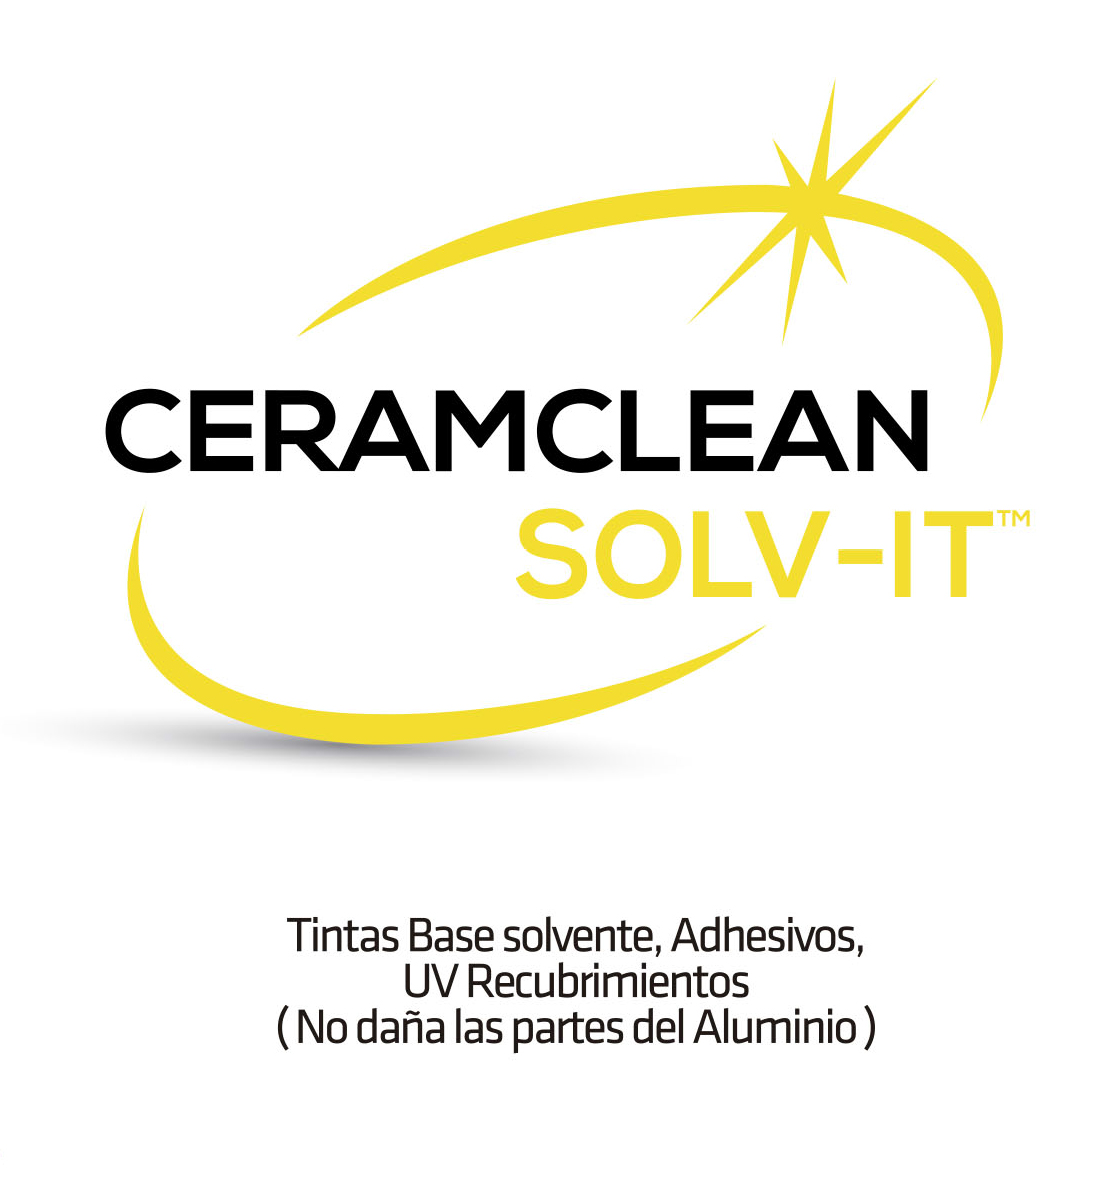 CERAM CLEAN SOLV IT